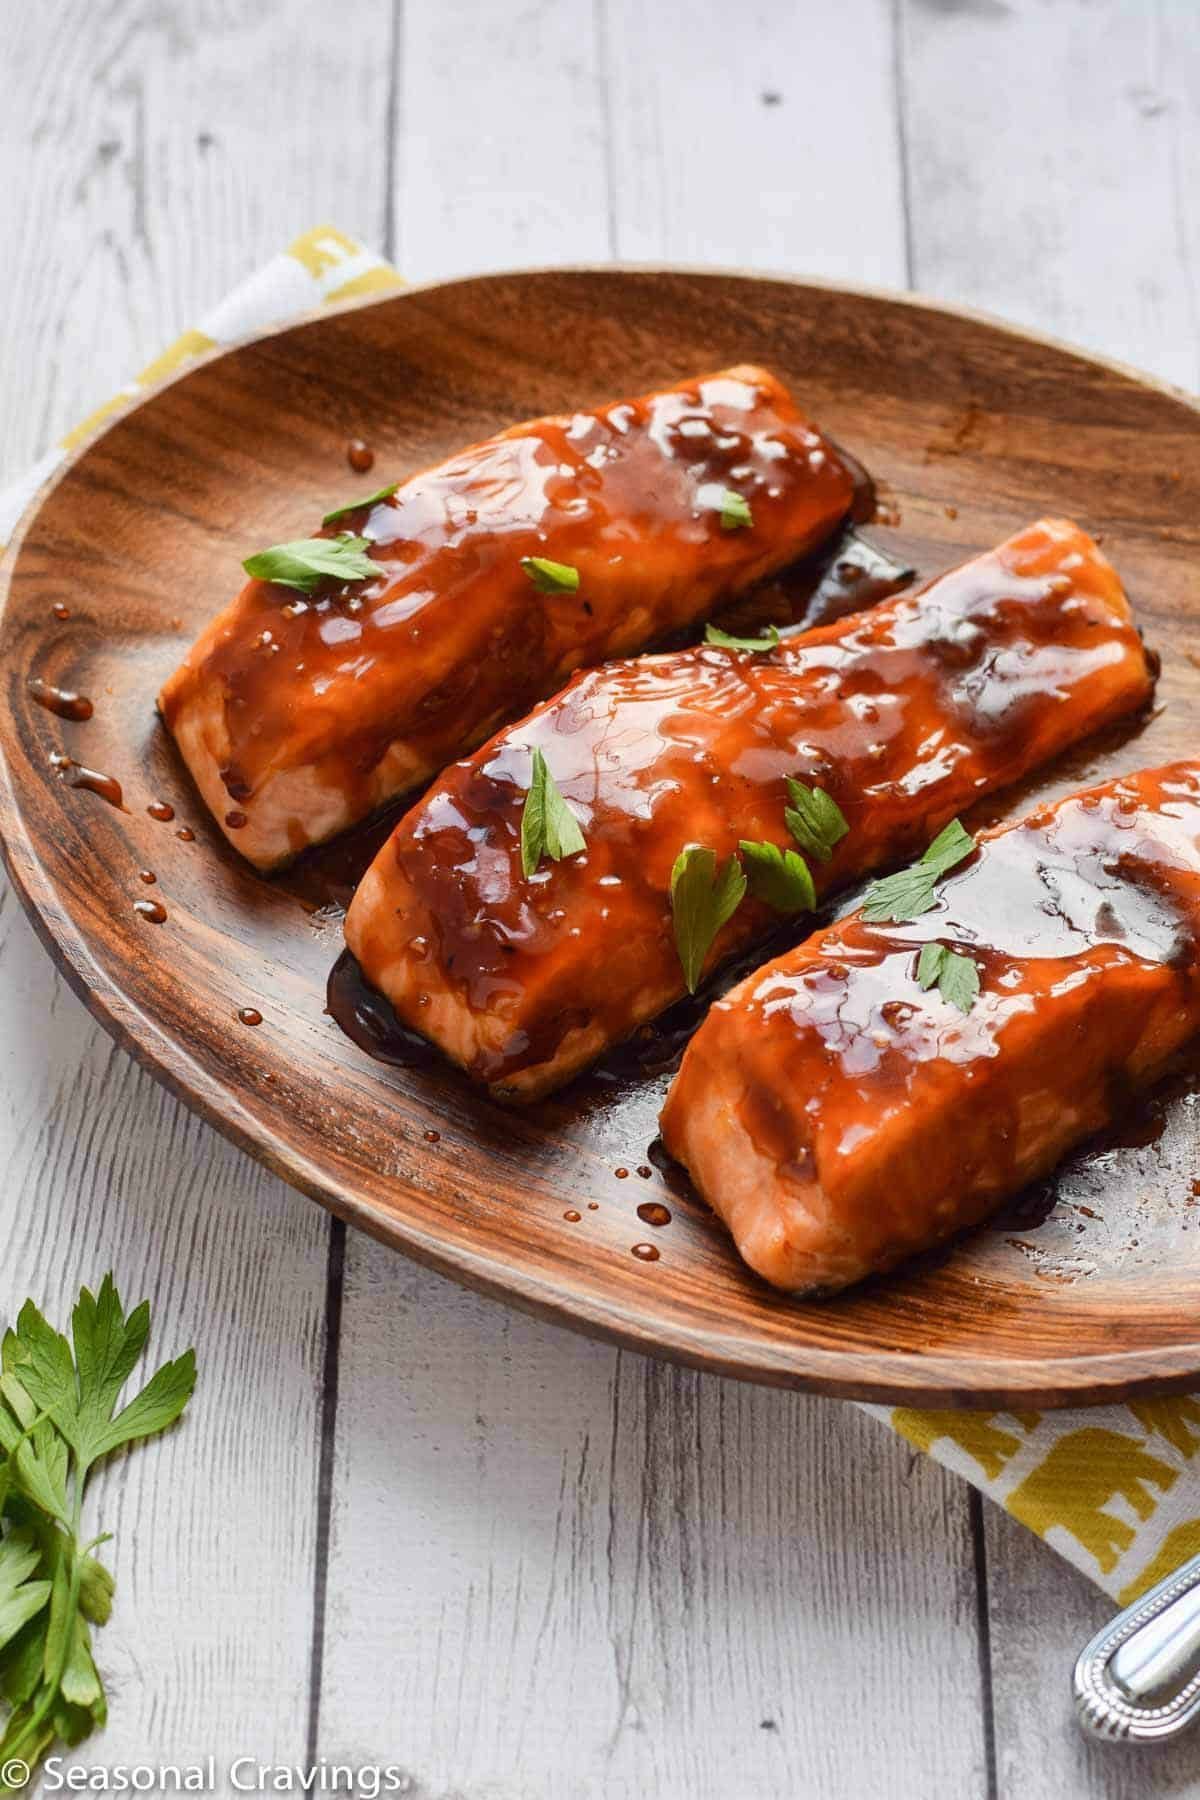 Baked Teriyaki Salmon #teriyakisalmon This Easy Teriyaki Salmon is a must for your weeknight rotation. The glaze is sticky sweet and a perfect topper to this mild roasted salmon. #glutenfree #salmon #dinner #seasonalcravings #healthy #teriyakisalmon Baked Teriyaki Salmon #teriyakisalmon This Easy Teriyaki Salmon is a must for your weeknight rotation. The glaze is sticky sweet and a perfect topper to this mild roasted salmon. #glutenfree #salmon #dinner #seasonalcravings #healthy #teriyakisalmon #teriyakisalmon